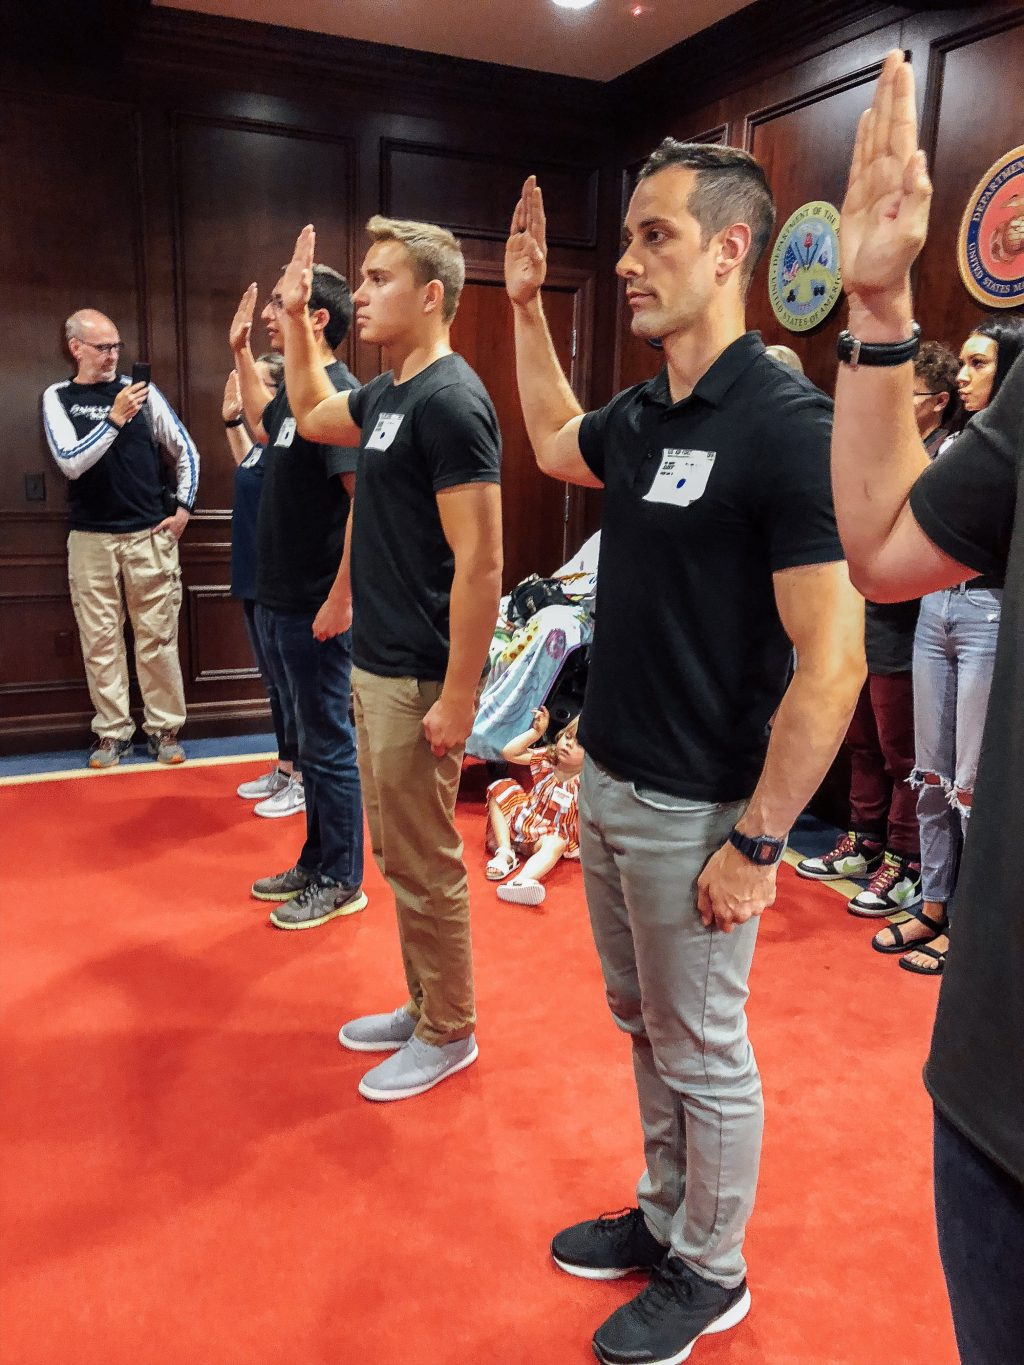 swearing in to the Air Force